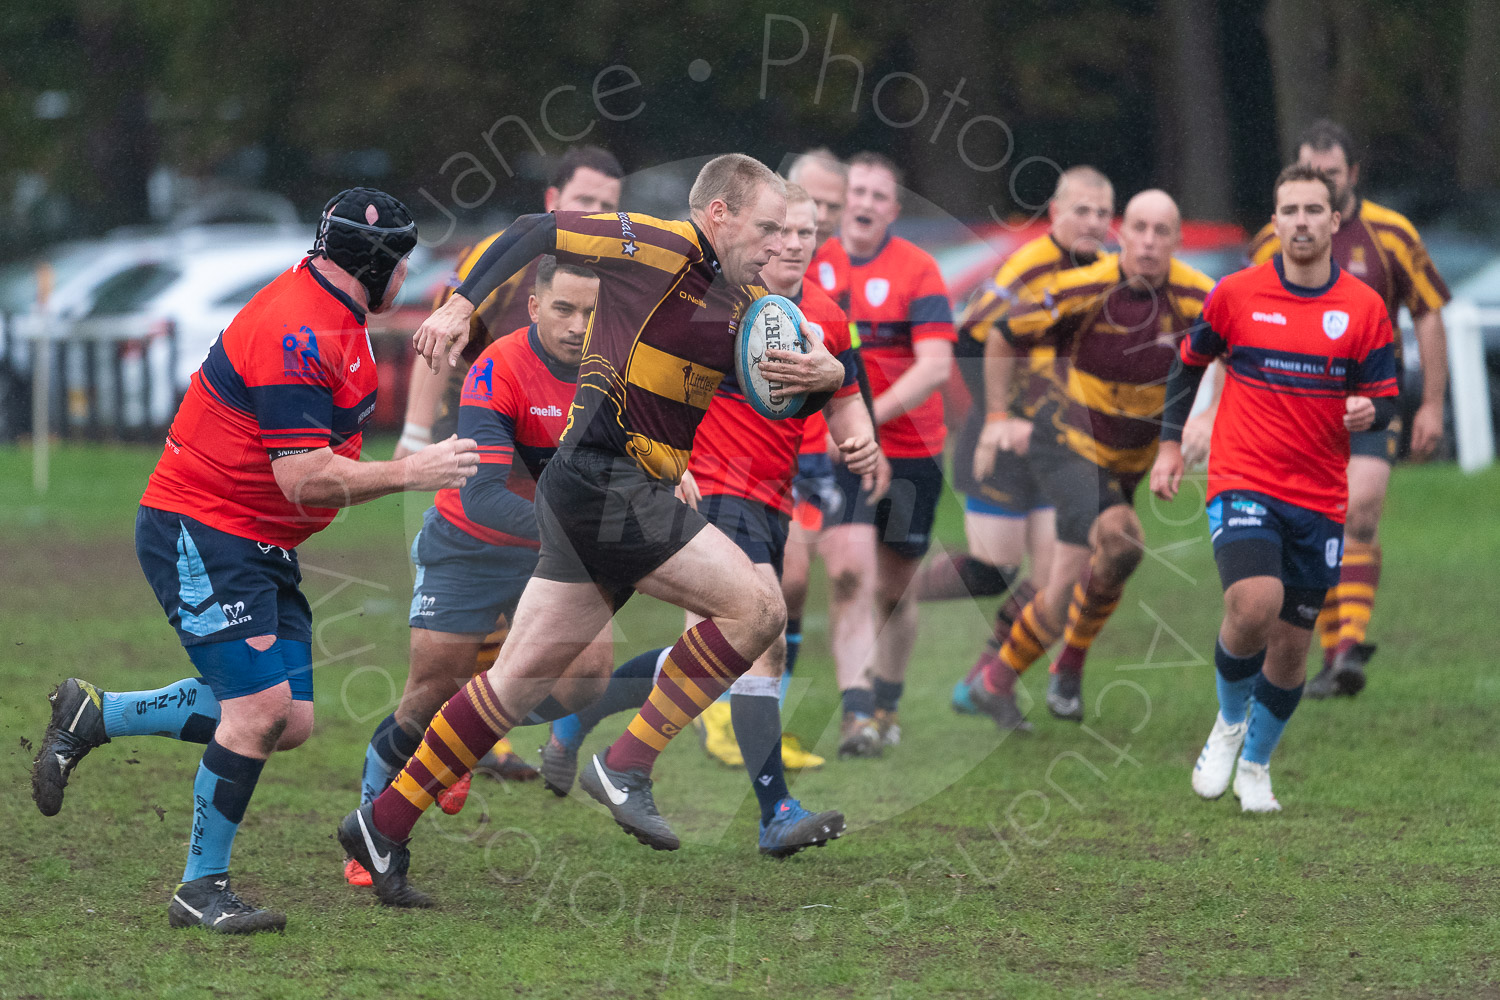 20181027 Amp Extras vs St Neots 2nd XV #2717